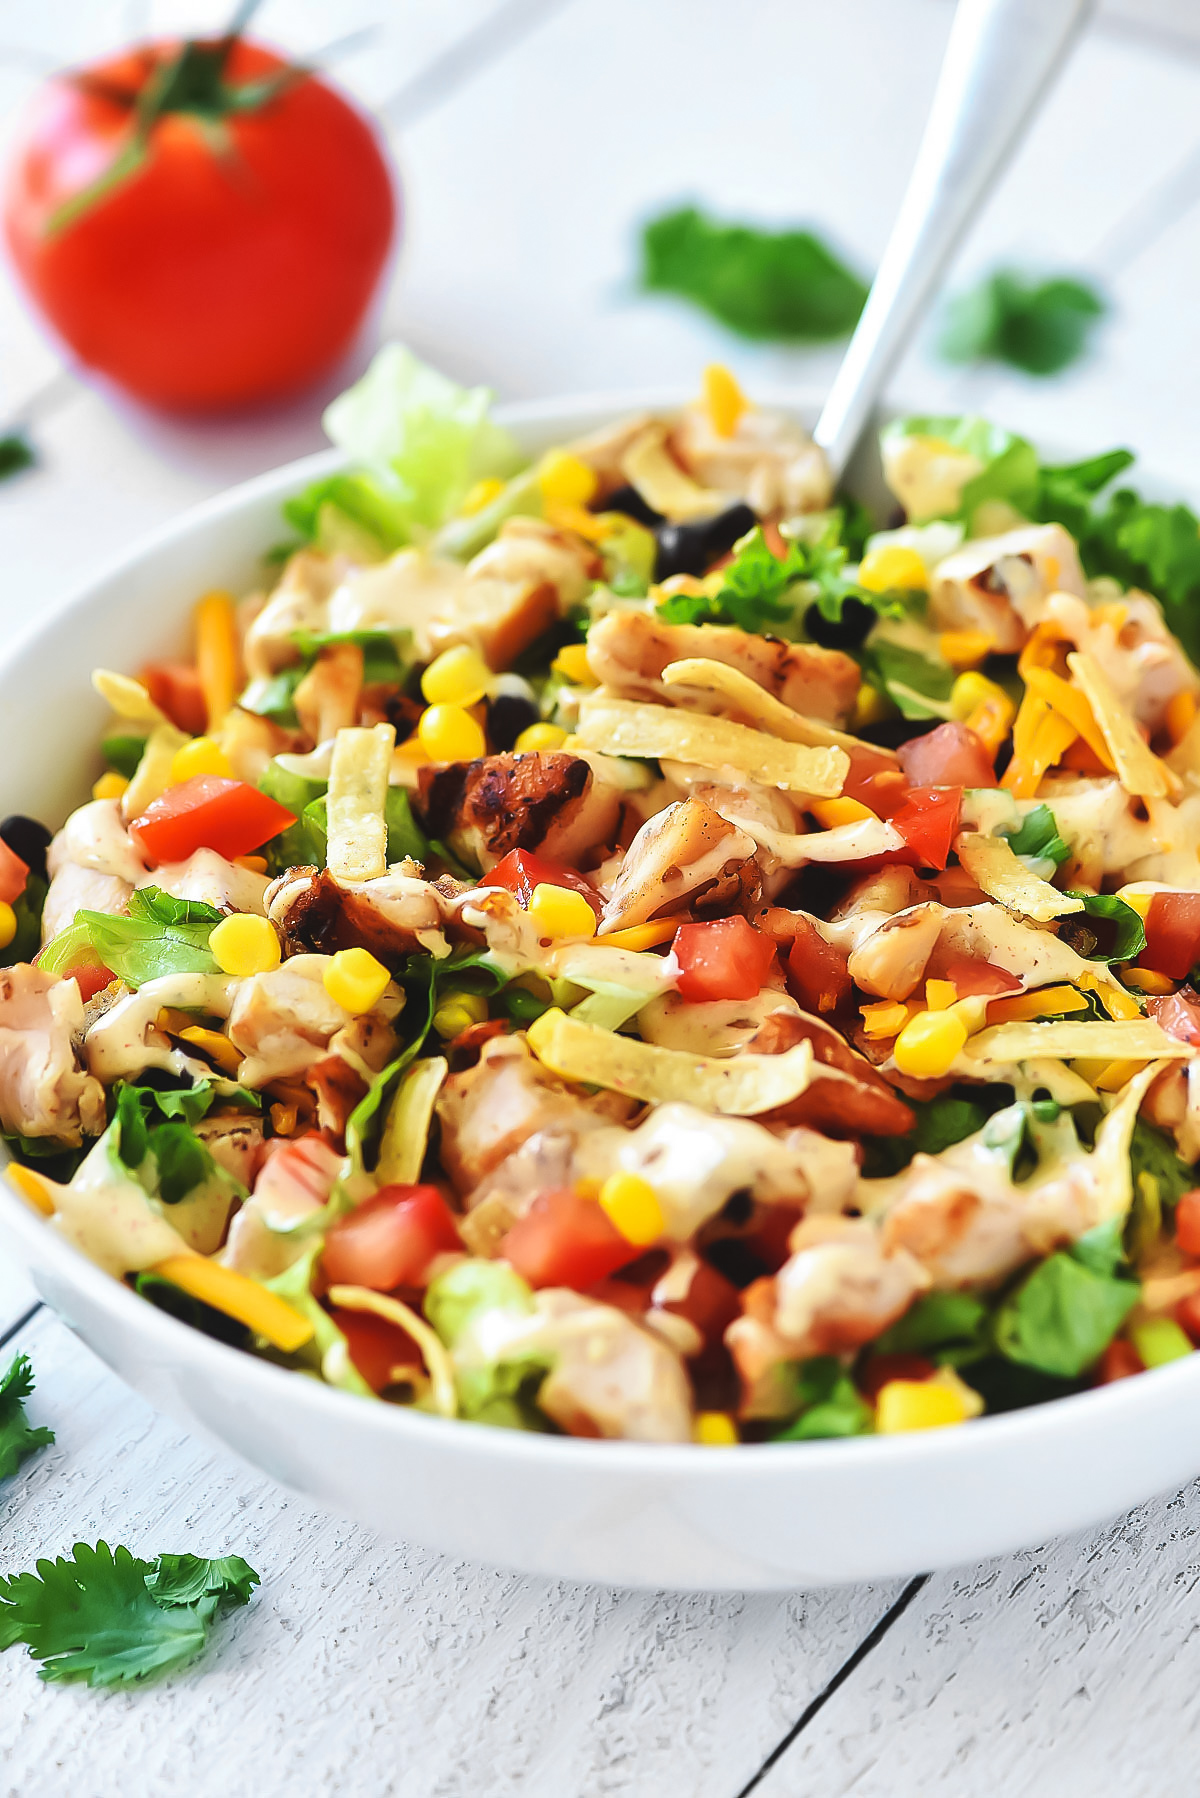 This Tex-Mex Chicken Chopped Salad is filled with crunchy romaine lettuce, corn, black beans, grilled chicken and more. The taco-flavored ranch dressing finishes it off to perfection!